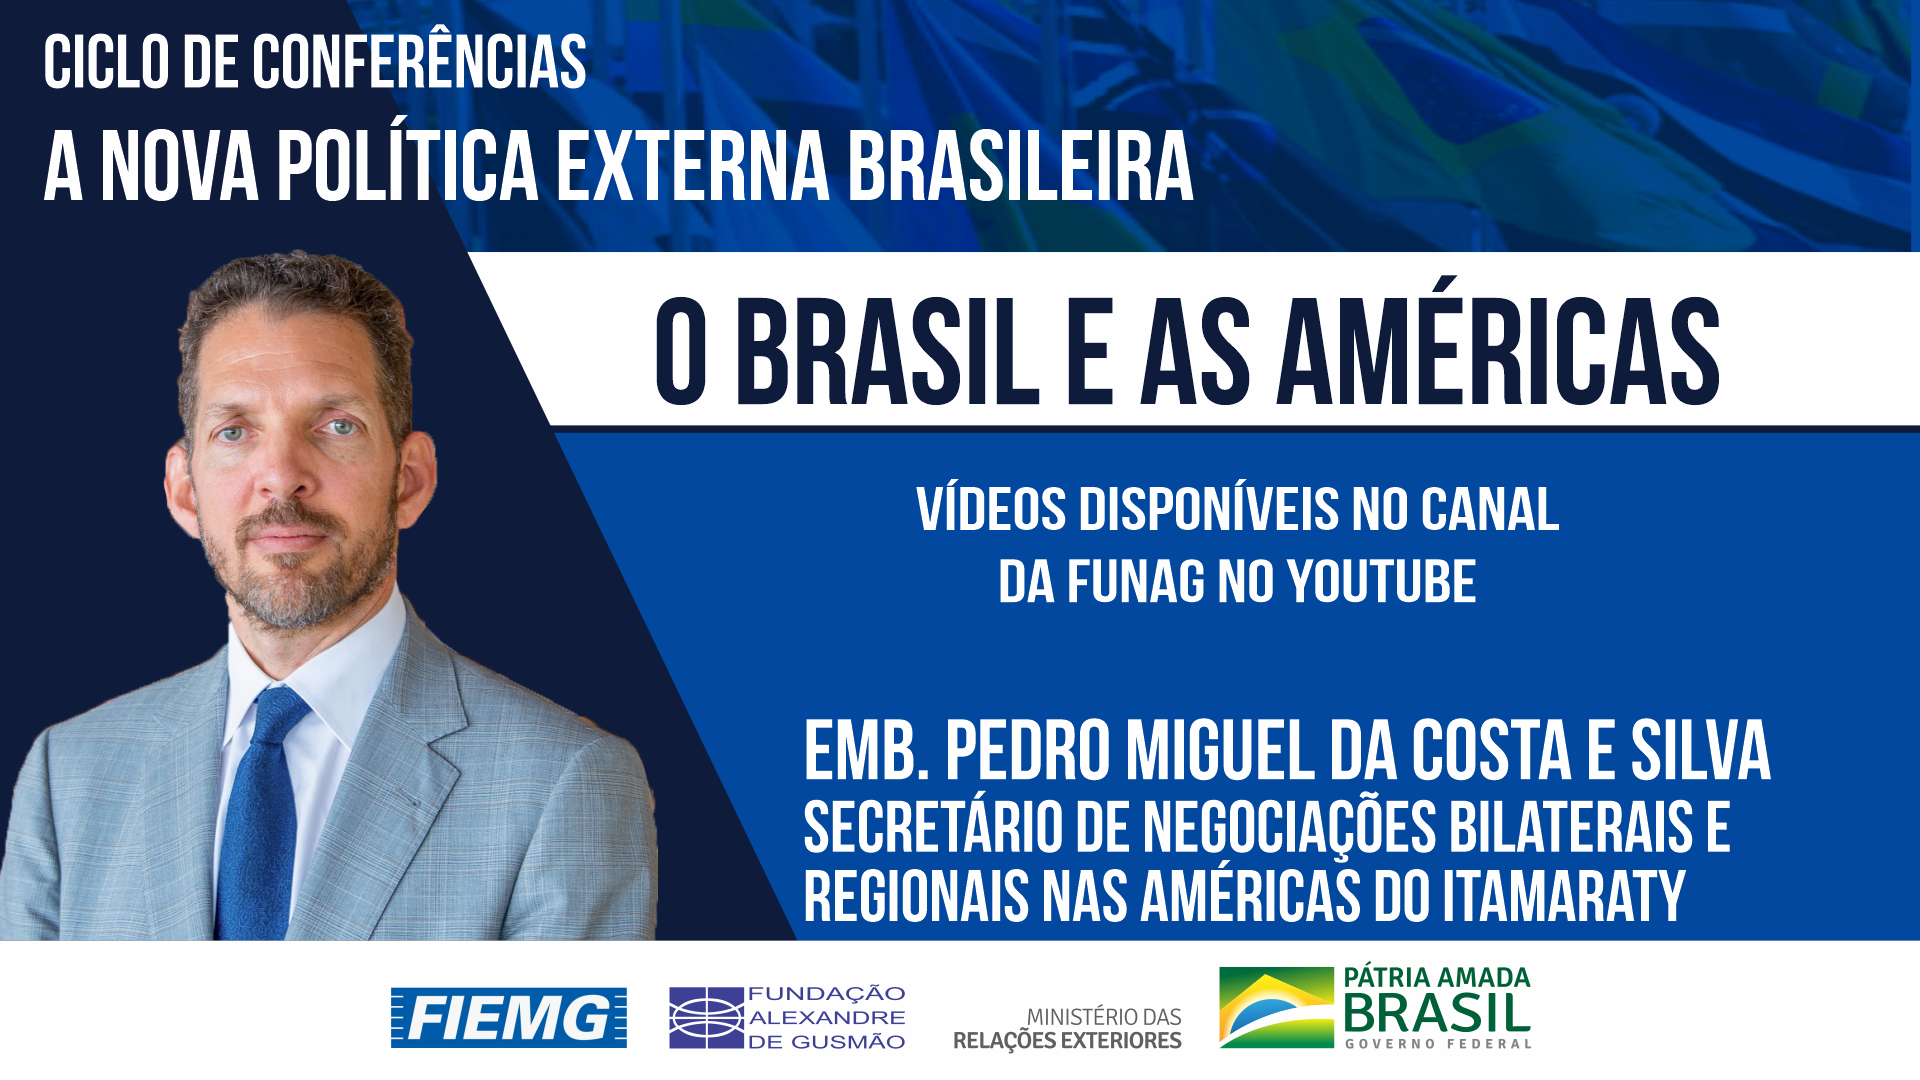 Watch the videos of the conference by the Secretary of Bilateral and Regional Negotiations in the Americas of the Ministry of Foreign Affairs, Ambassador Pedro Miguel da Costa e Silva